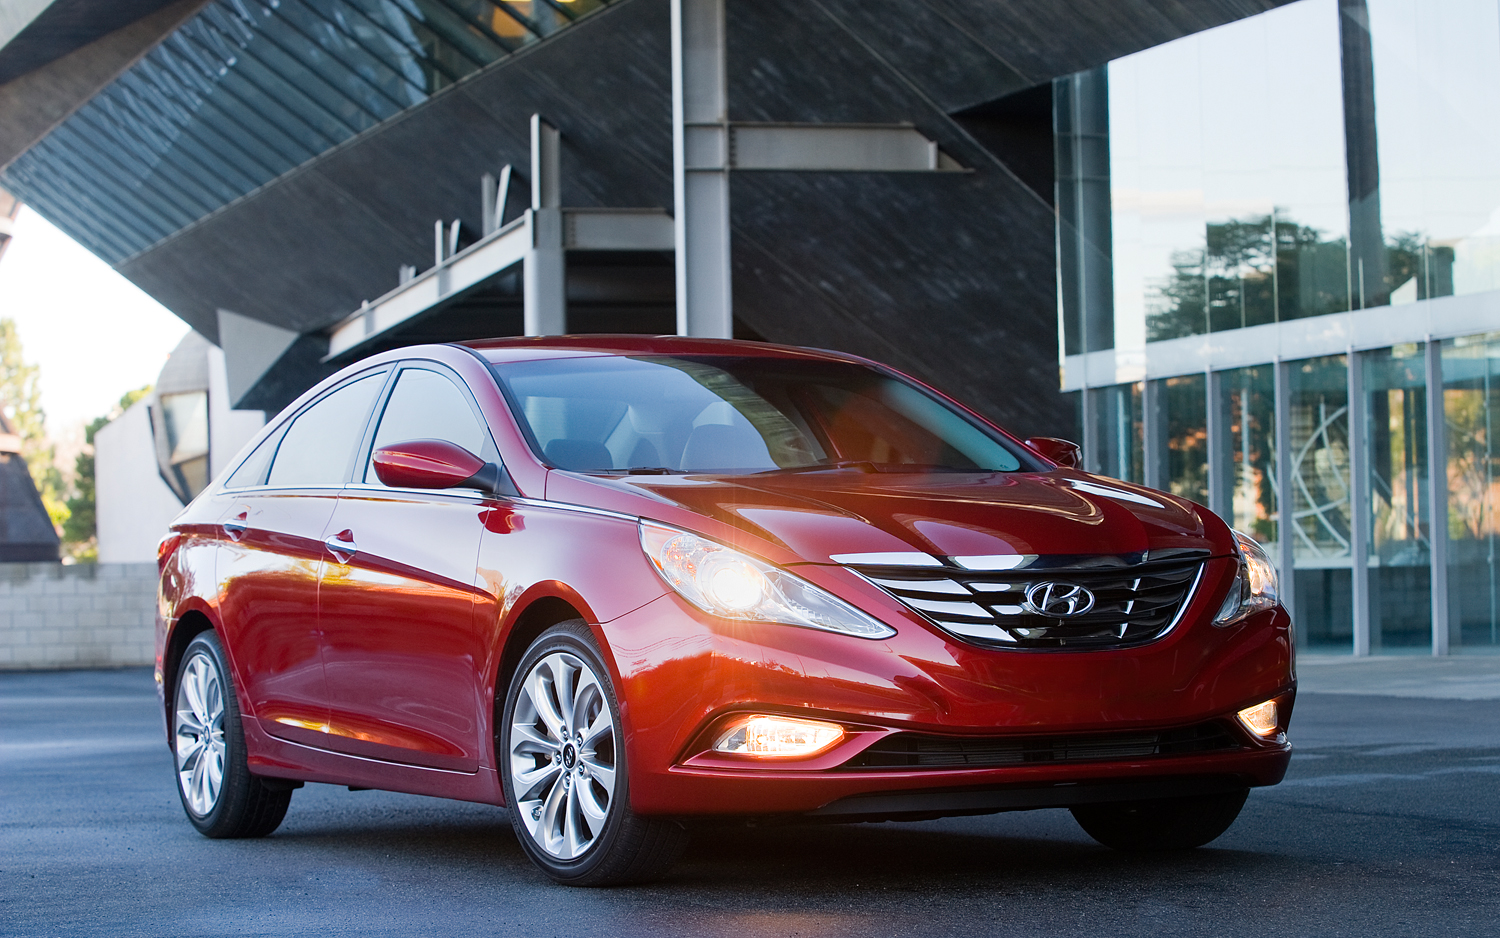 2013 Hyundai Sonata Gets More Equipment, Modest Price Bump